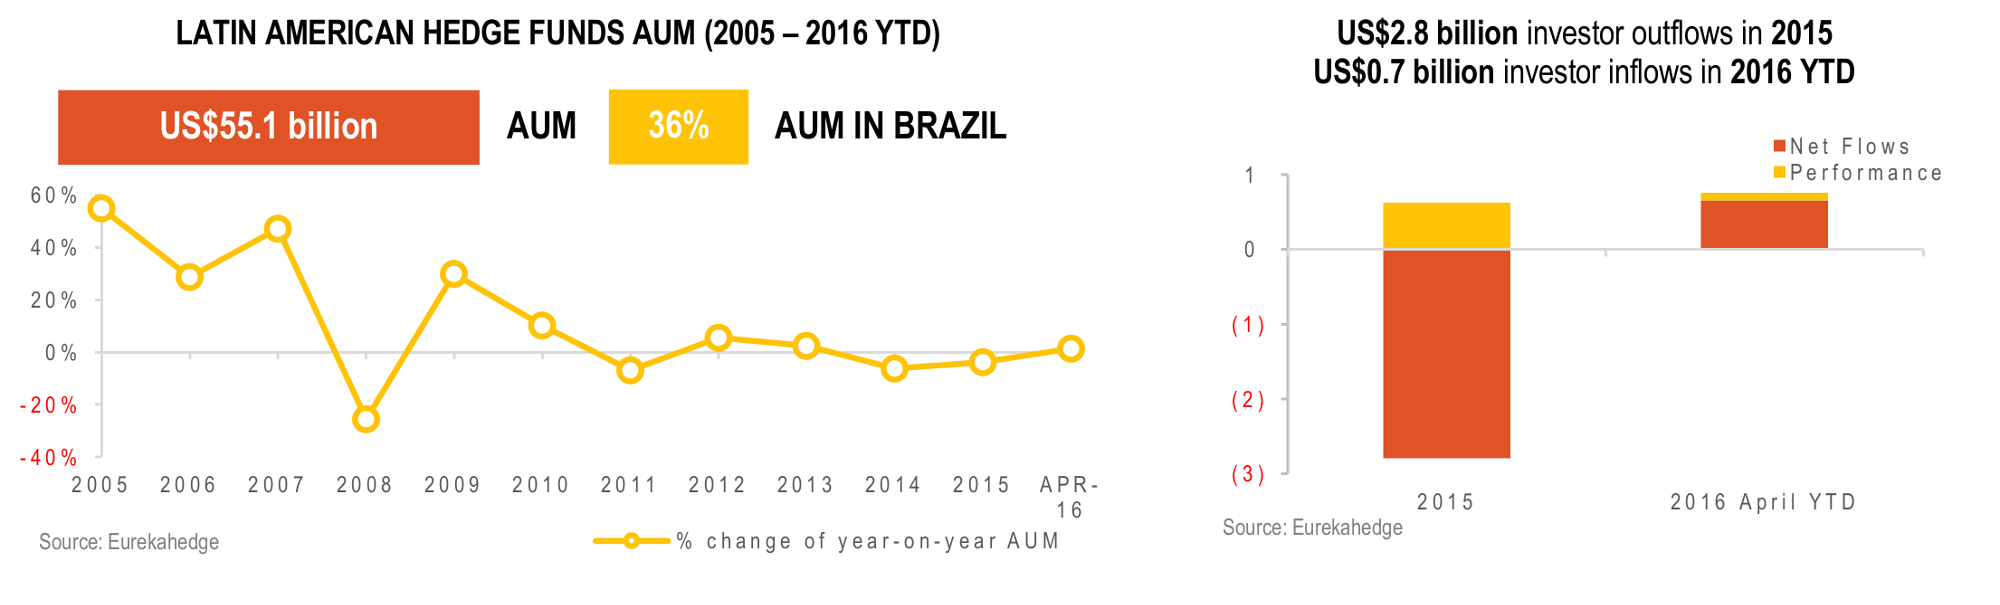 Latin American Hedge Funds Infographic June 2016 - Total regional AUM and number of funds